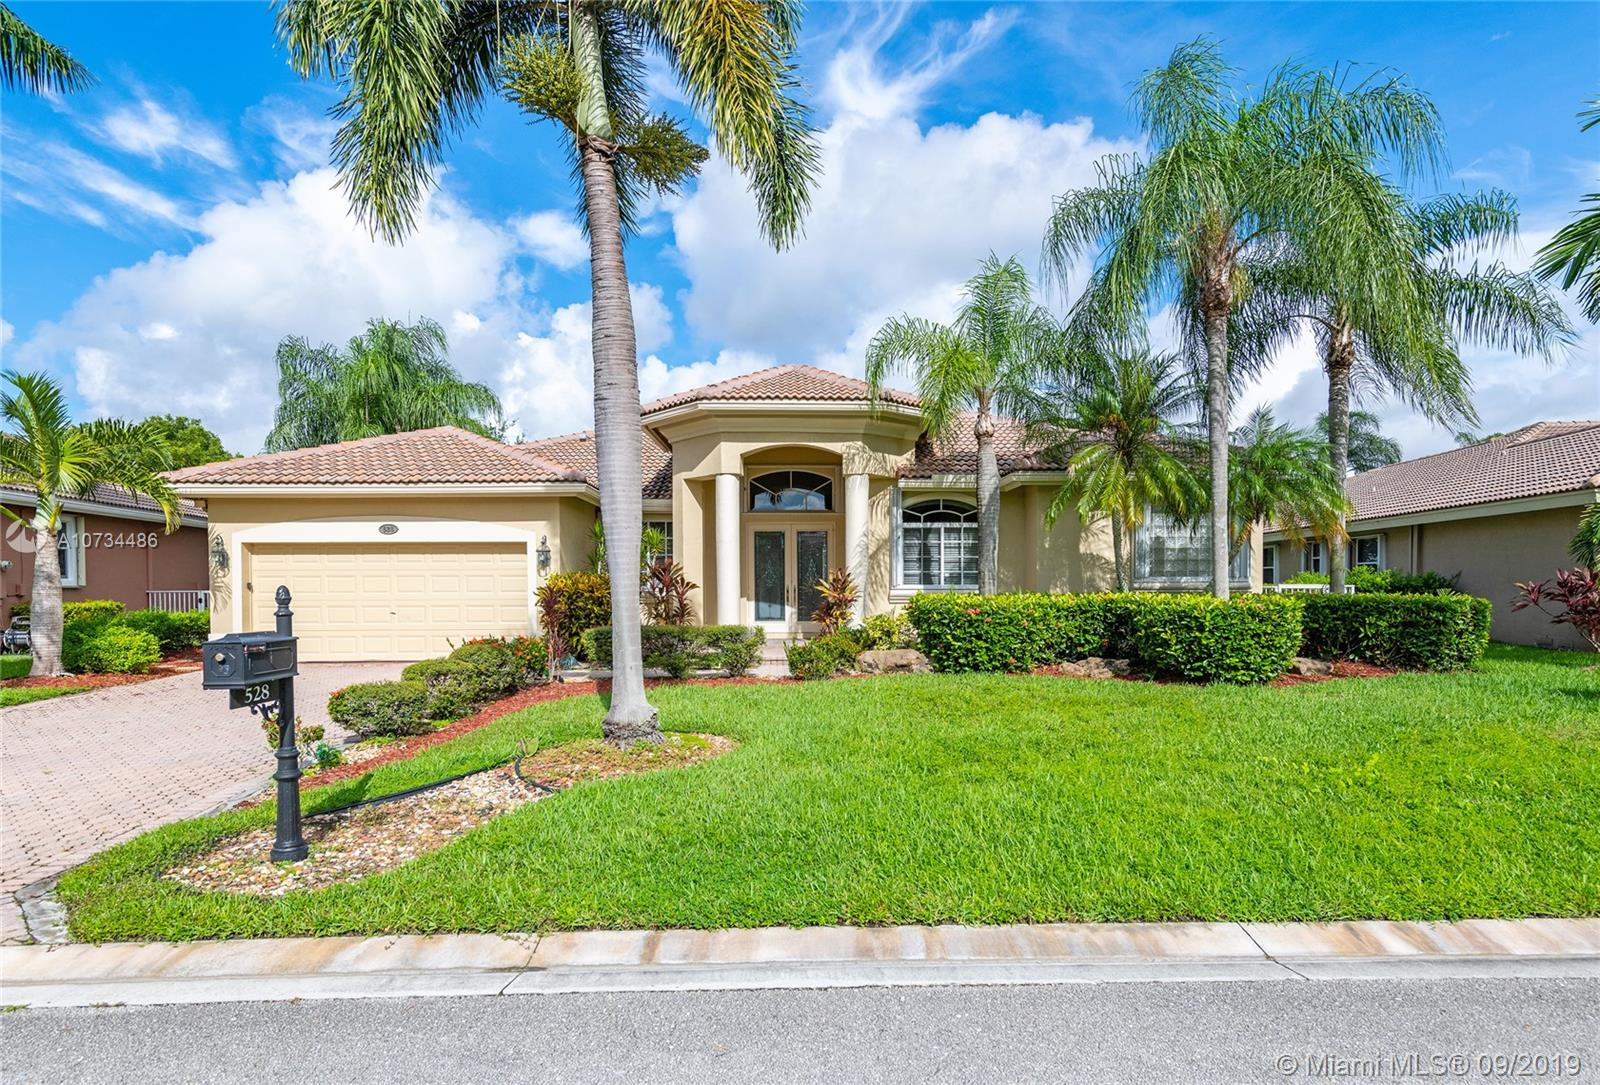 528 NW 120th Drive, Coral Springs, FL 33071